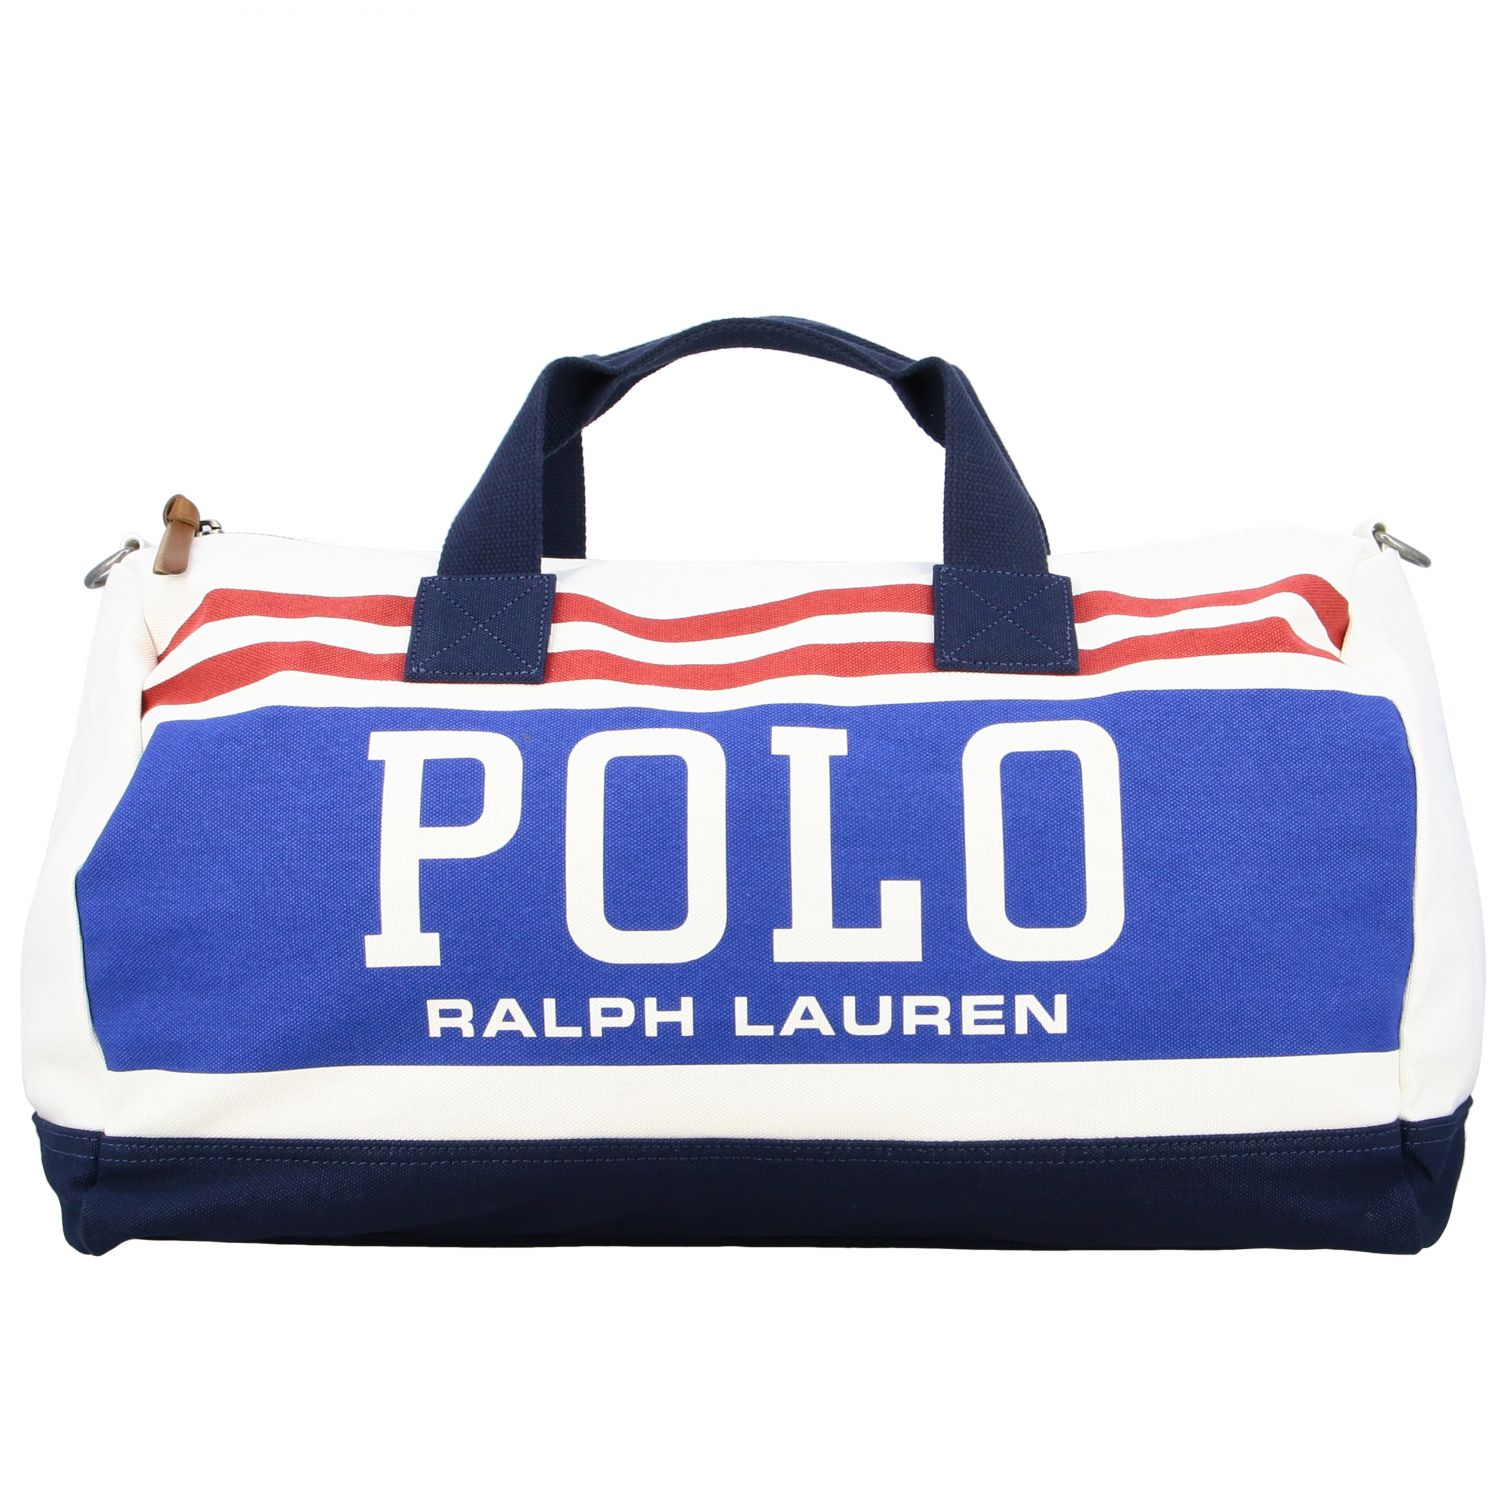 Borsone Polo Ralph Lauren in tela con big logo bianco 1